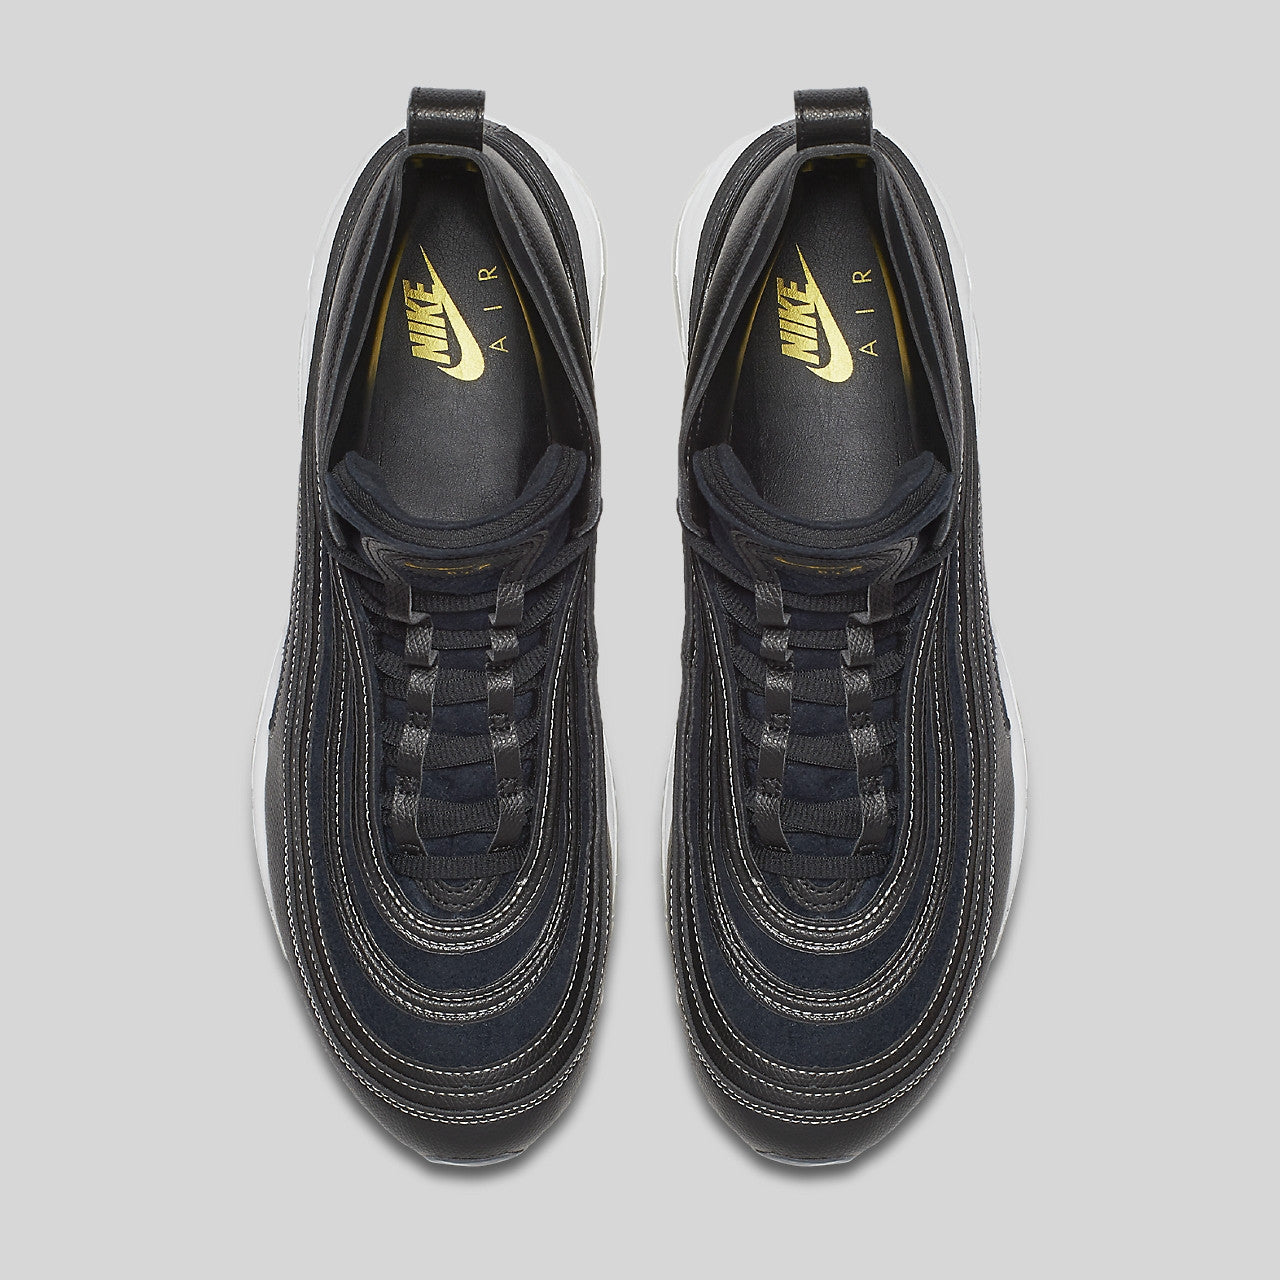 Riccardo Tisci x Nike Air Max 97 Mid   RT Black Metallic Gold White. Item  Number  913314-001 0bc2ea38b8